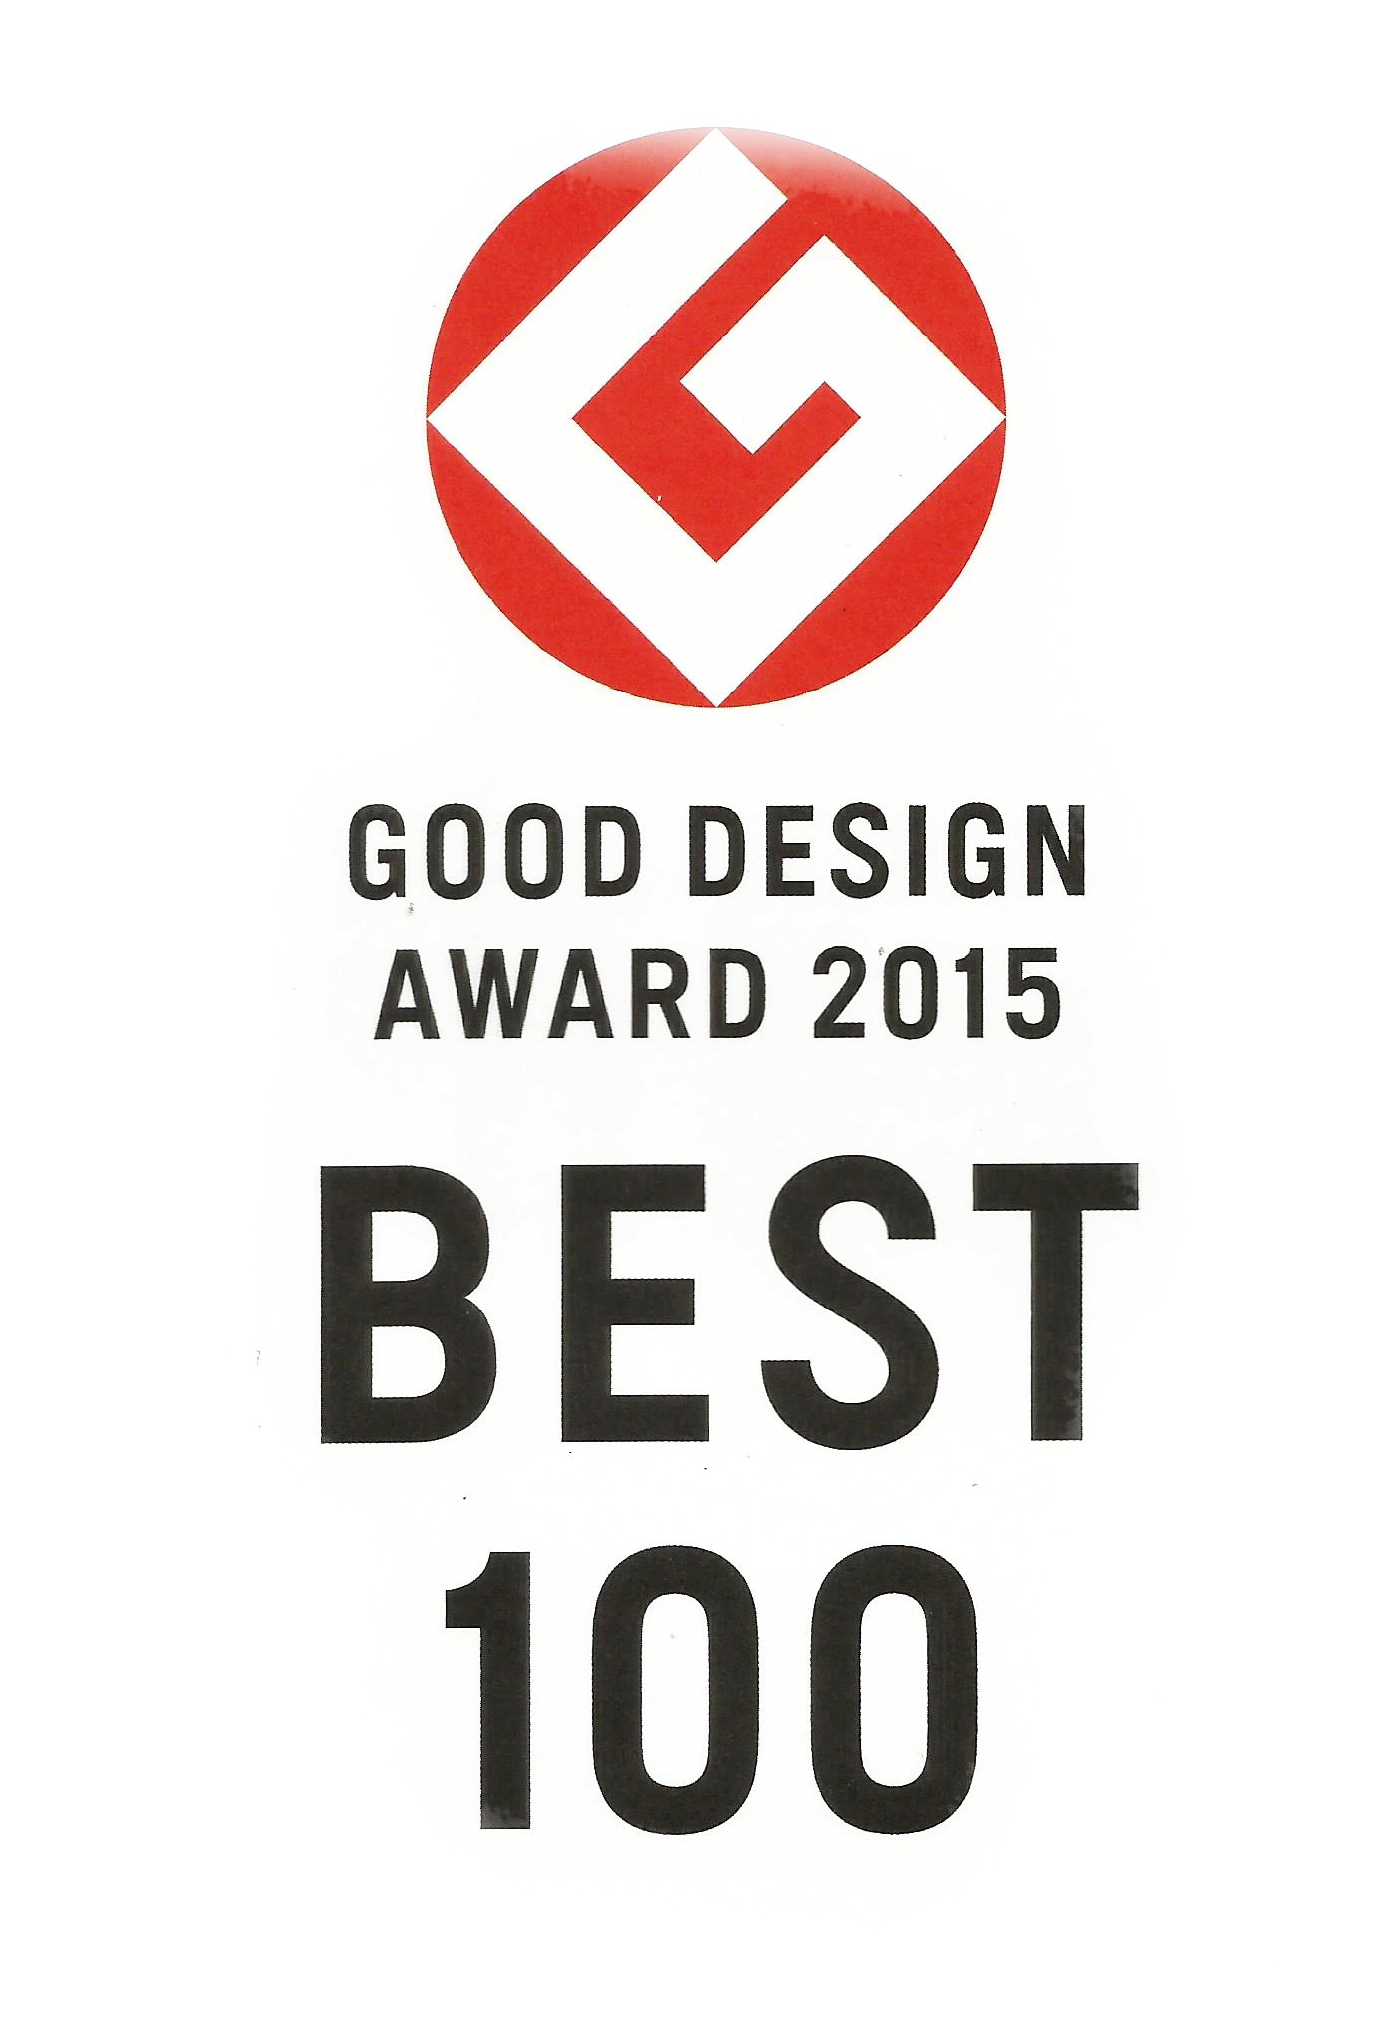 good design award 2015 best100. Black Bedroom Furniture Sets. Home Design Ideas